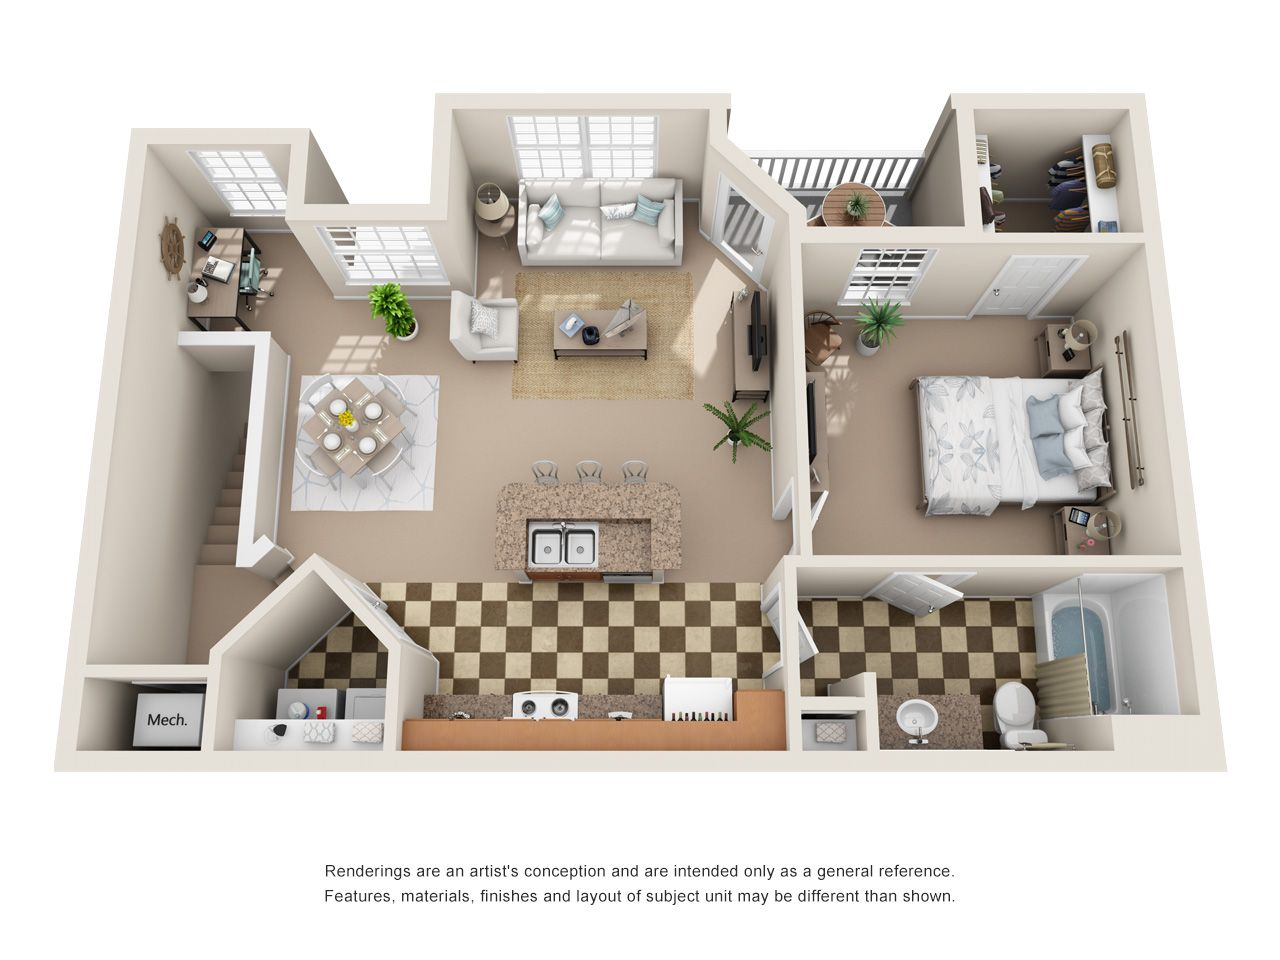 Studio, 1, 2, and 3 Bedroom Apartments in Antioch for Rent